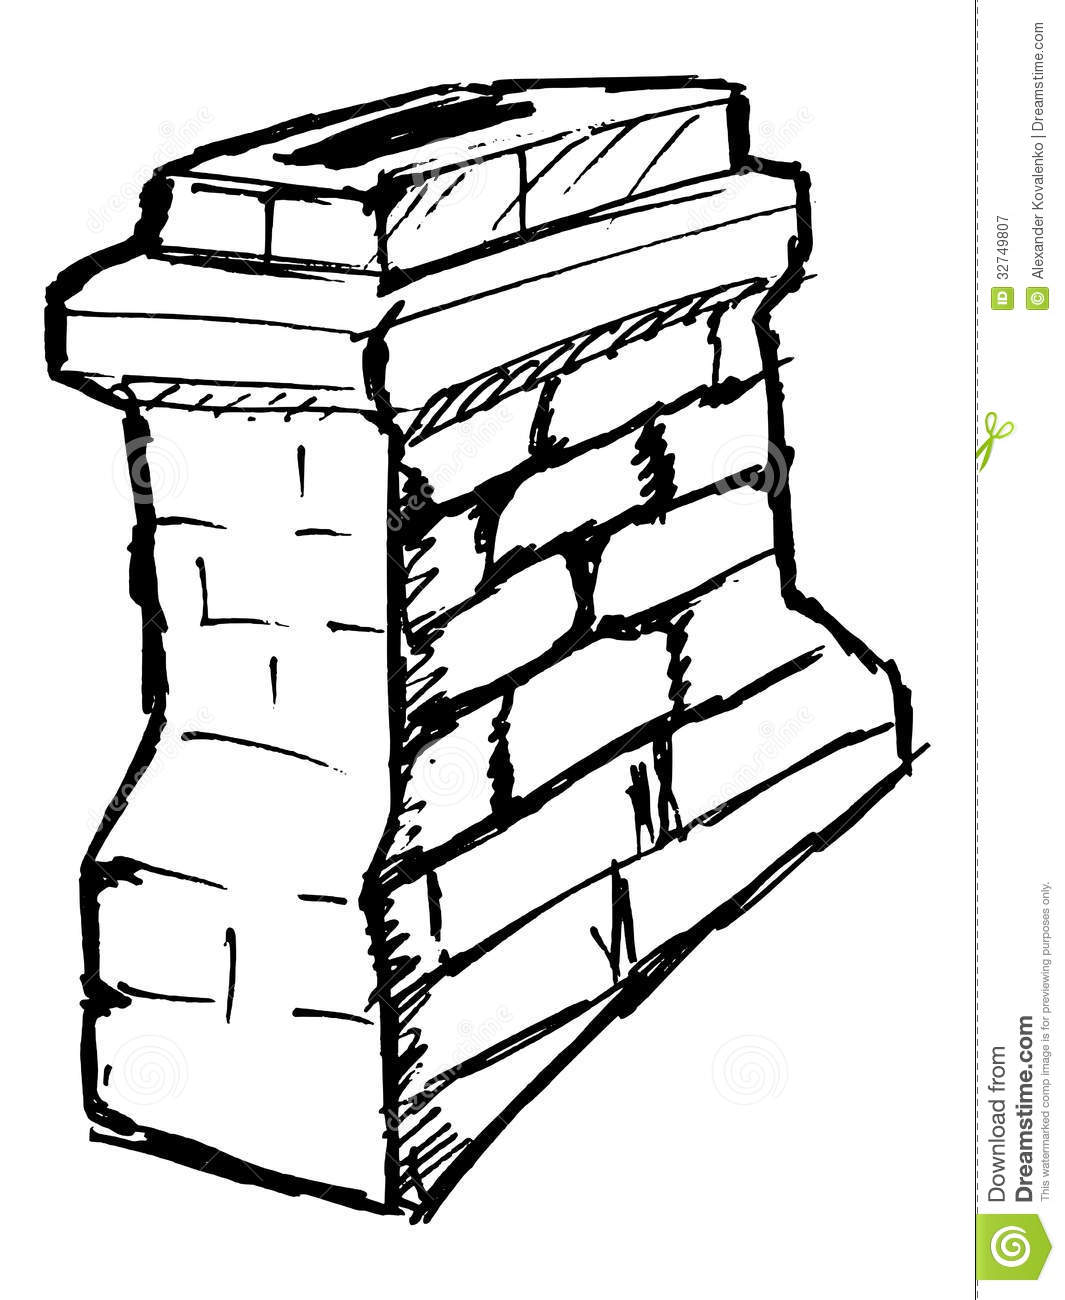 Electrical Layout Residential likewise Stock Images Modern White Wall Texture Image15936344 as well Edie Falco Dumping Downtown Duplex Digs 998 as well 2 as well Royalty Free Stock Photography Chimney Hand Drawn Sketch Illustration Image32749807. on all brick house plans